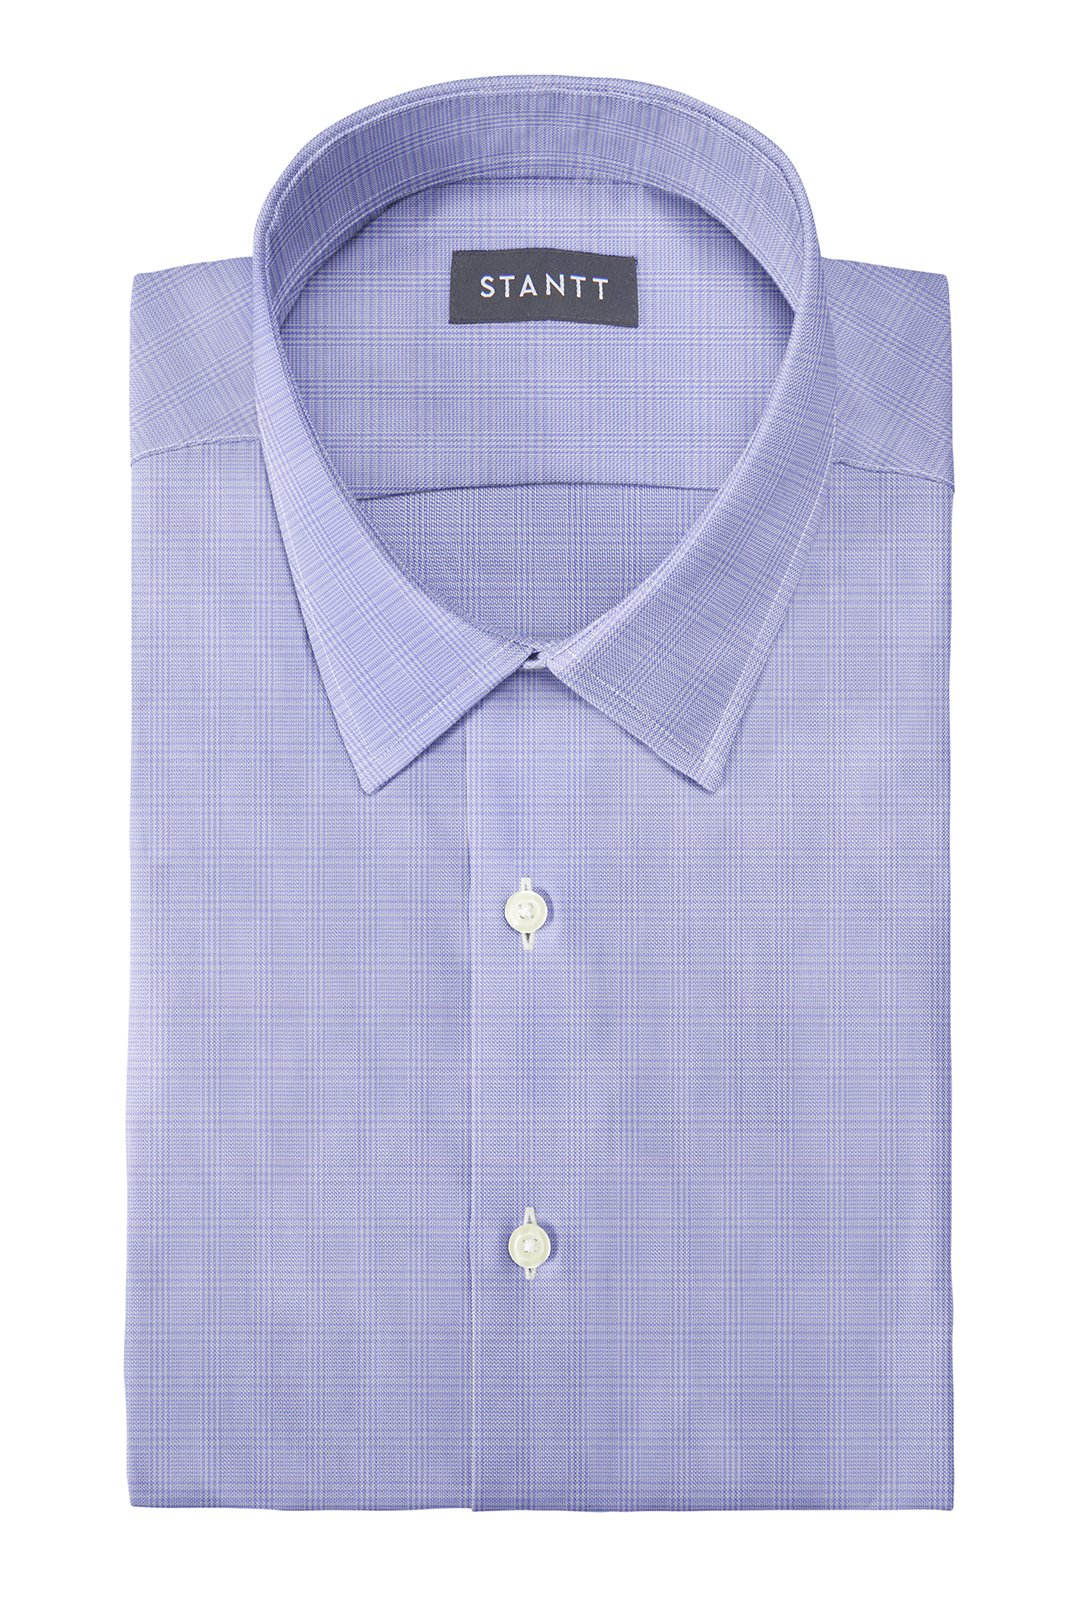 Wrinkle-Resistant Lavender Prince of Wales Check: Semi-Spread Collar, Barrel Cuff